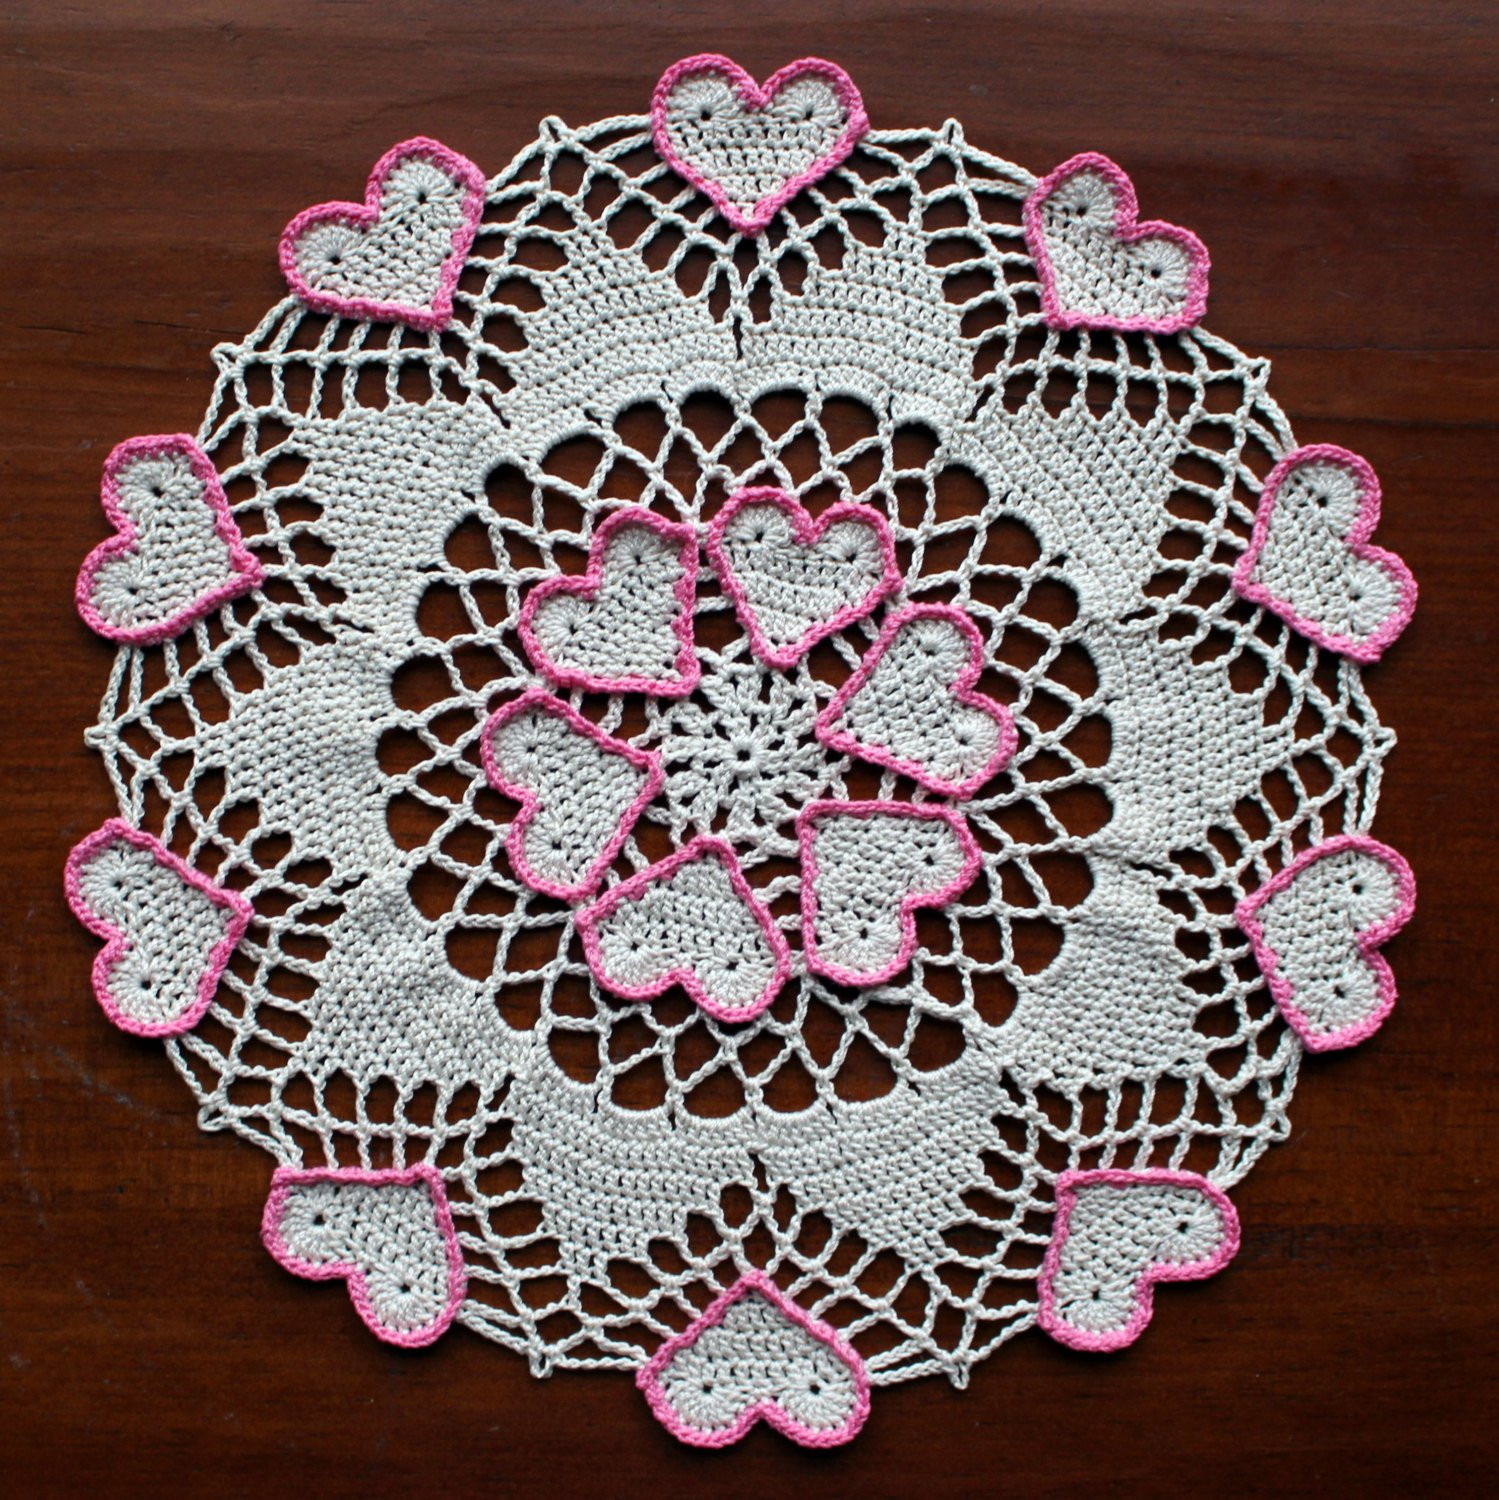 Heart Doilies Beautiful Crochet Doily Ecru with Hearts Outlined In Pink Of Marvelous 46 Photos Heart Doilies